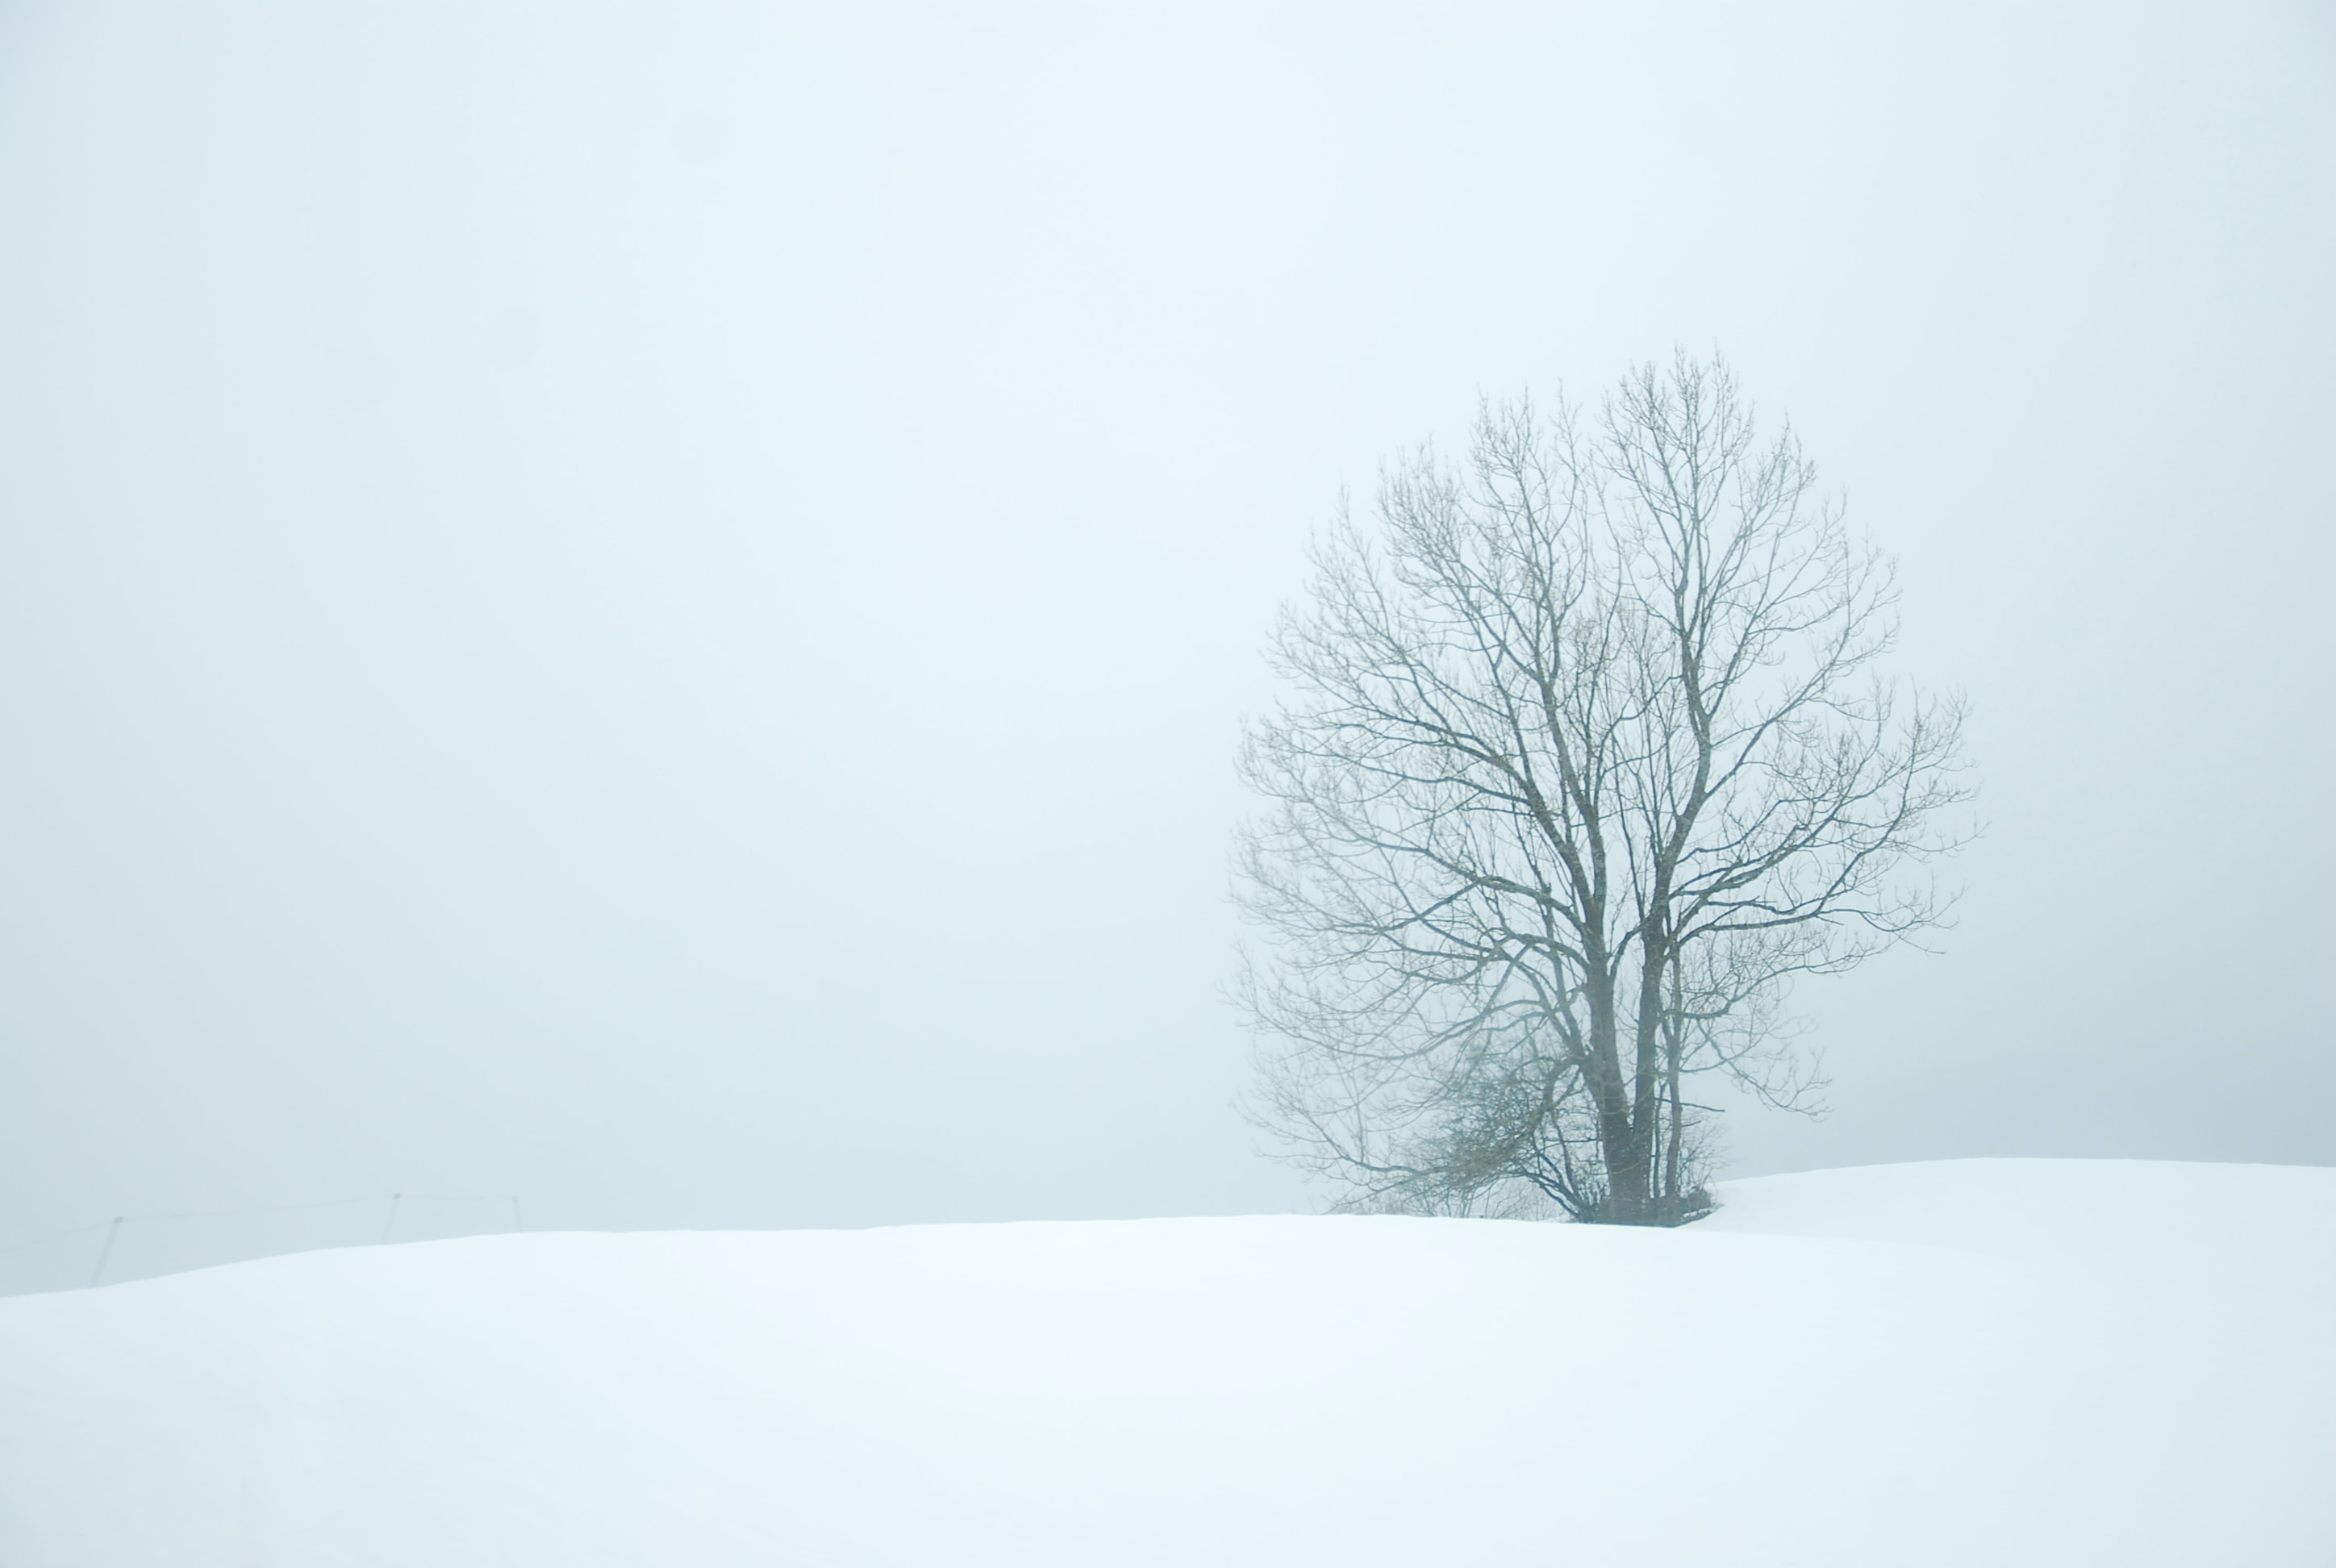 bare tree in the middle of snow field